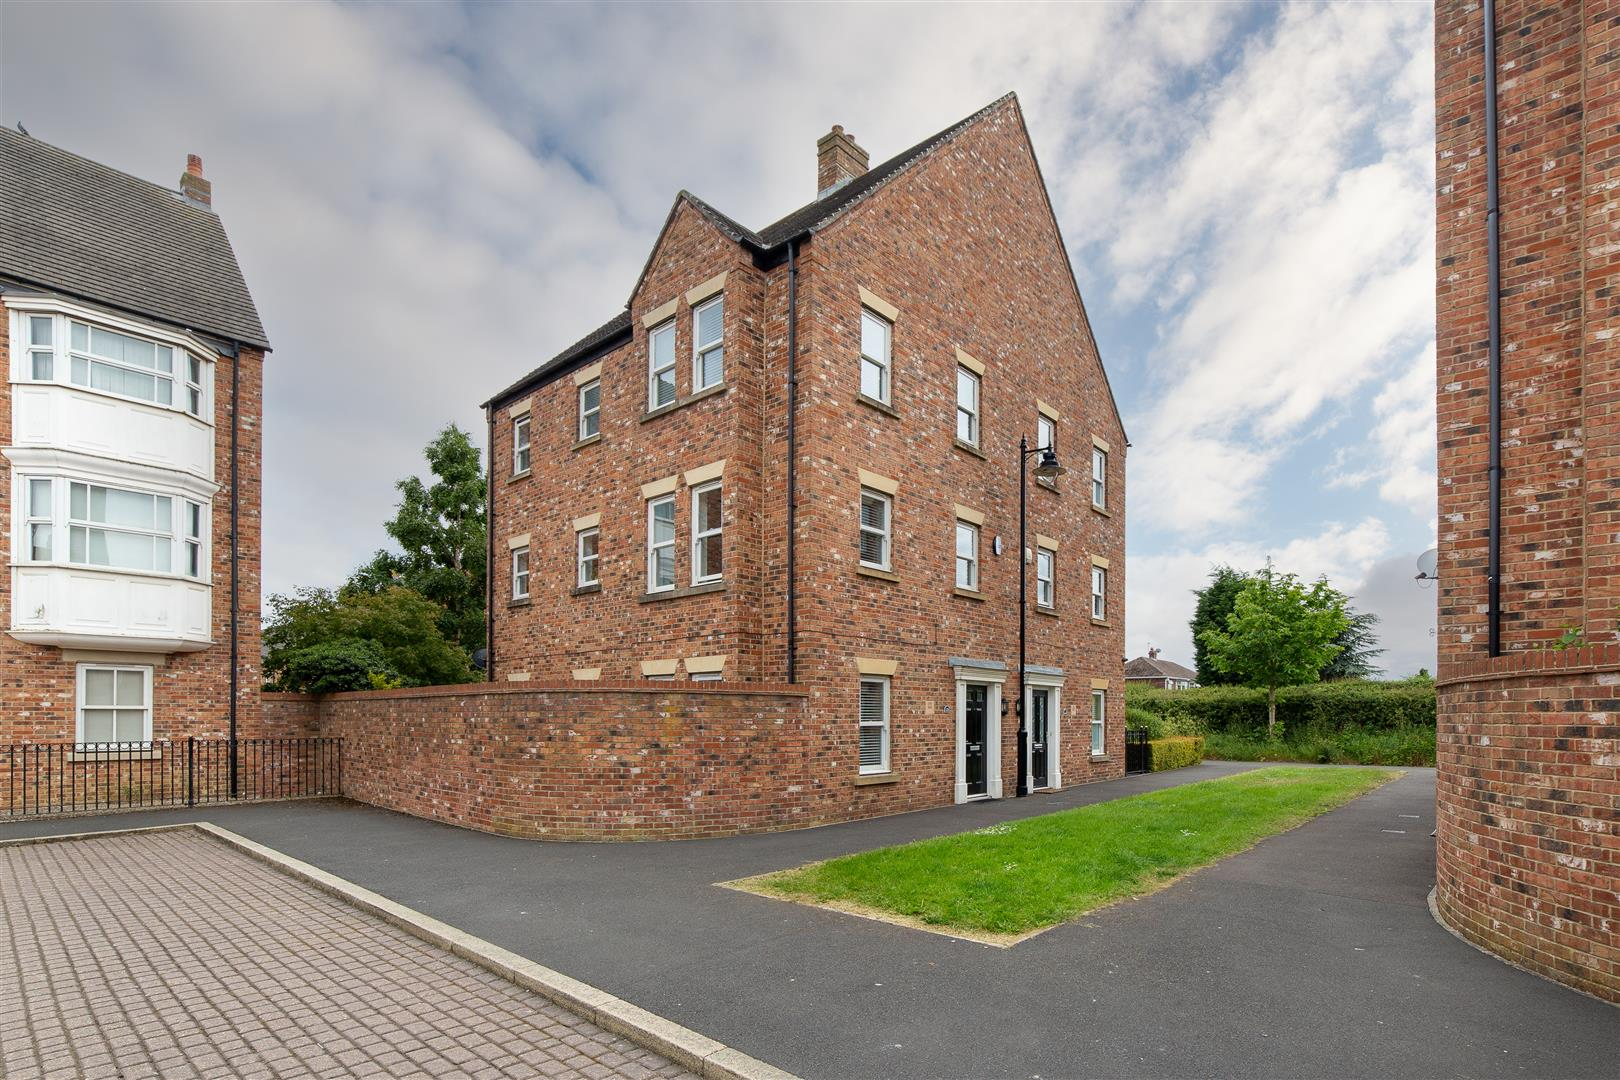 4 bed semi-detached house for sale in Warkworth Woods, Great Park, NE3